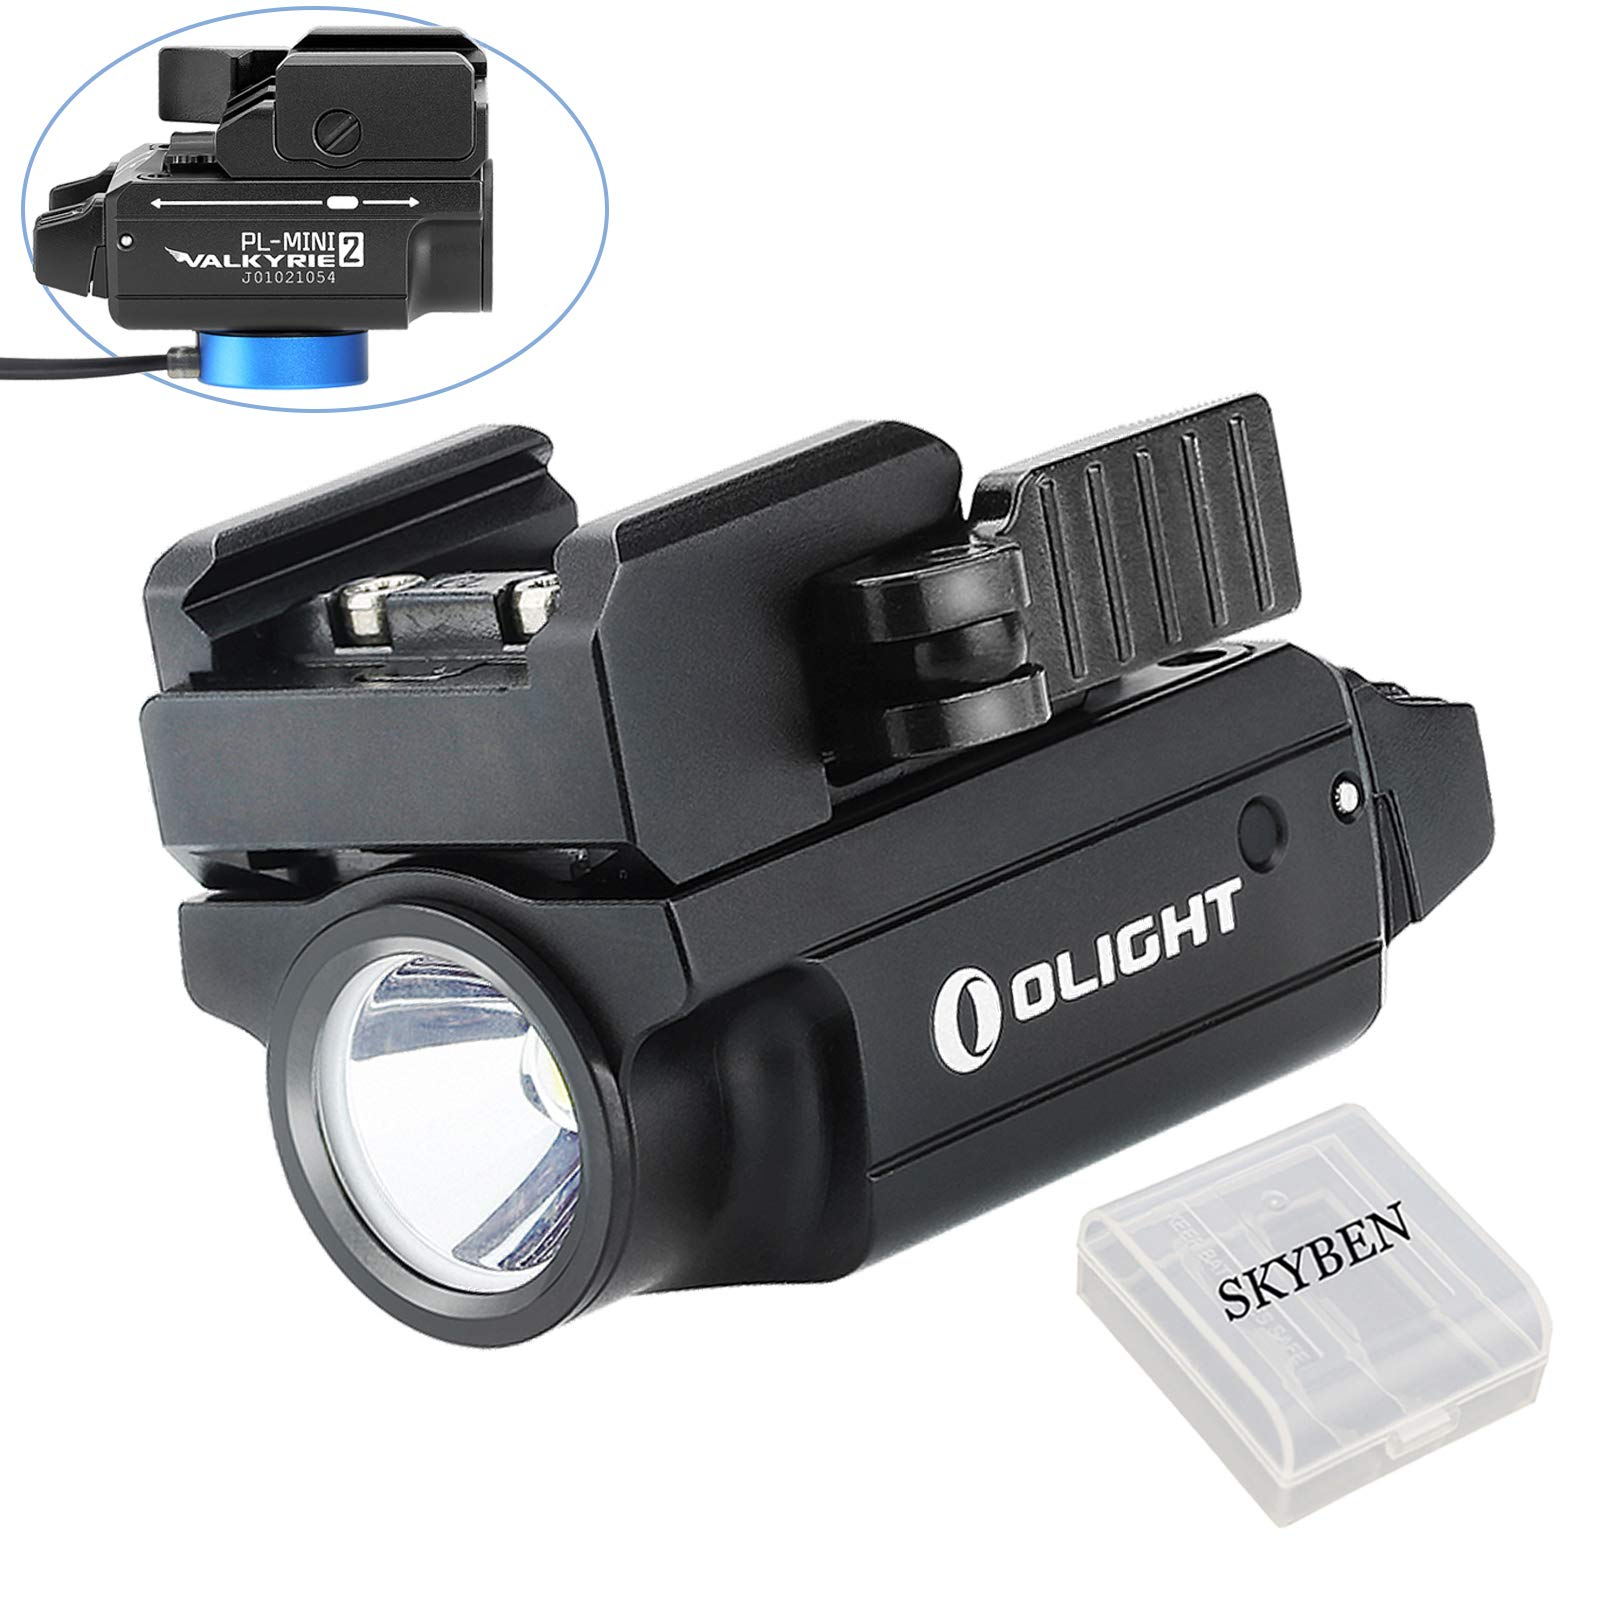 Olight PL-MINI 2 Valkyrie 600 Lumens Cree XP-L HD CW LED Modular Weaponlight Magnetic Rechargeable with Adjustable Rail,Powered by a Built-in Polymer Battery, with SKYBEN Battery Case(Black) by OLIGHT